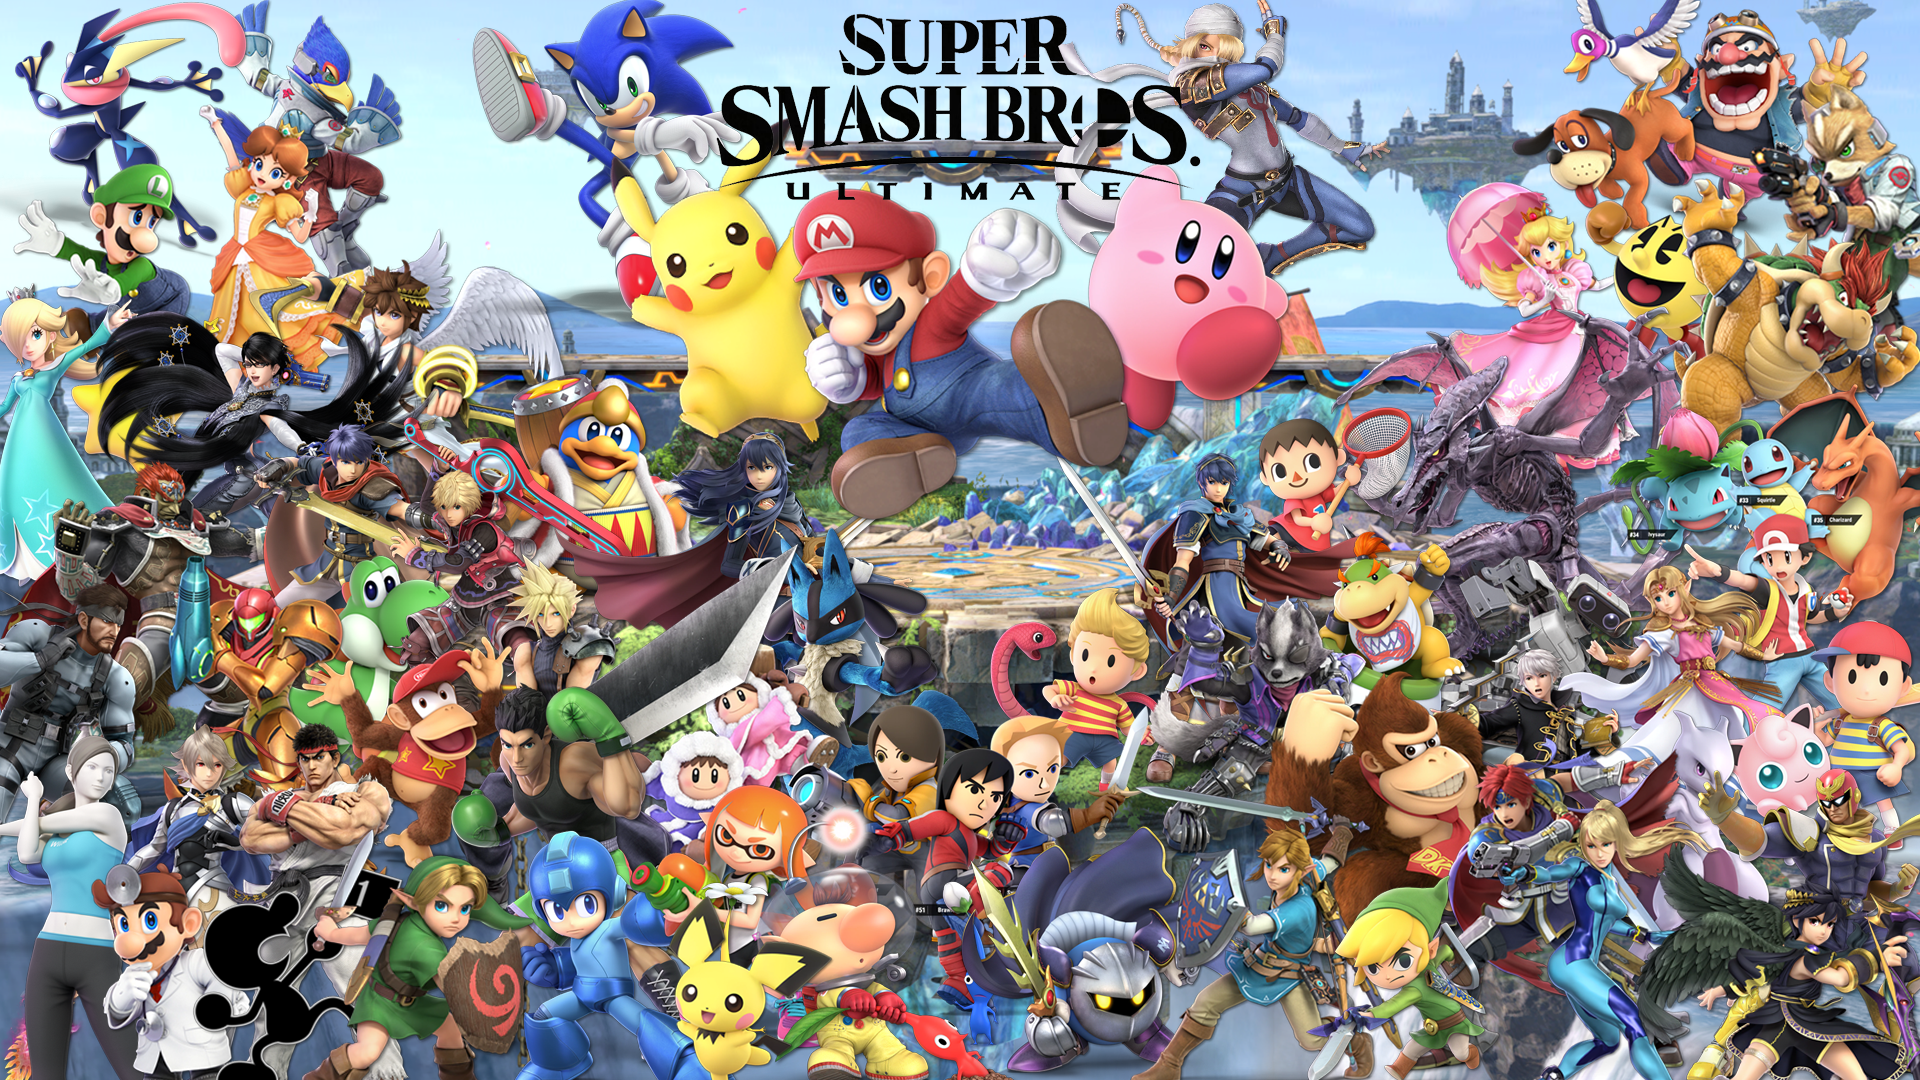 Super Smash Bros Ultimate Wallpapers Top Free Super Smash Bros